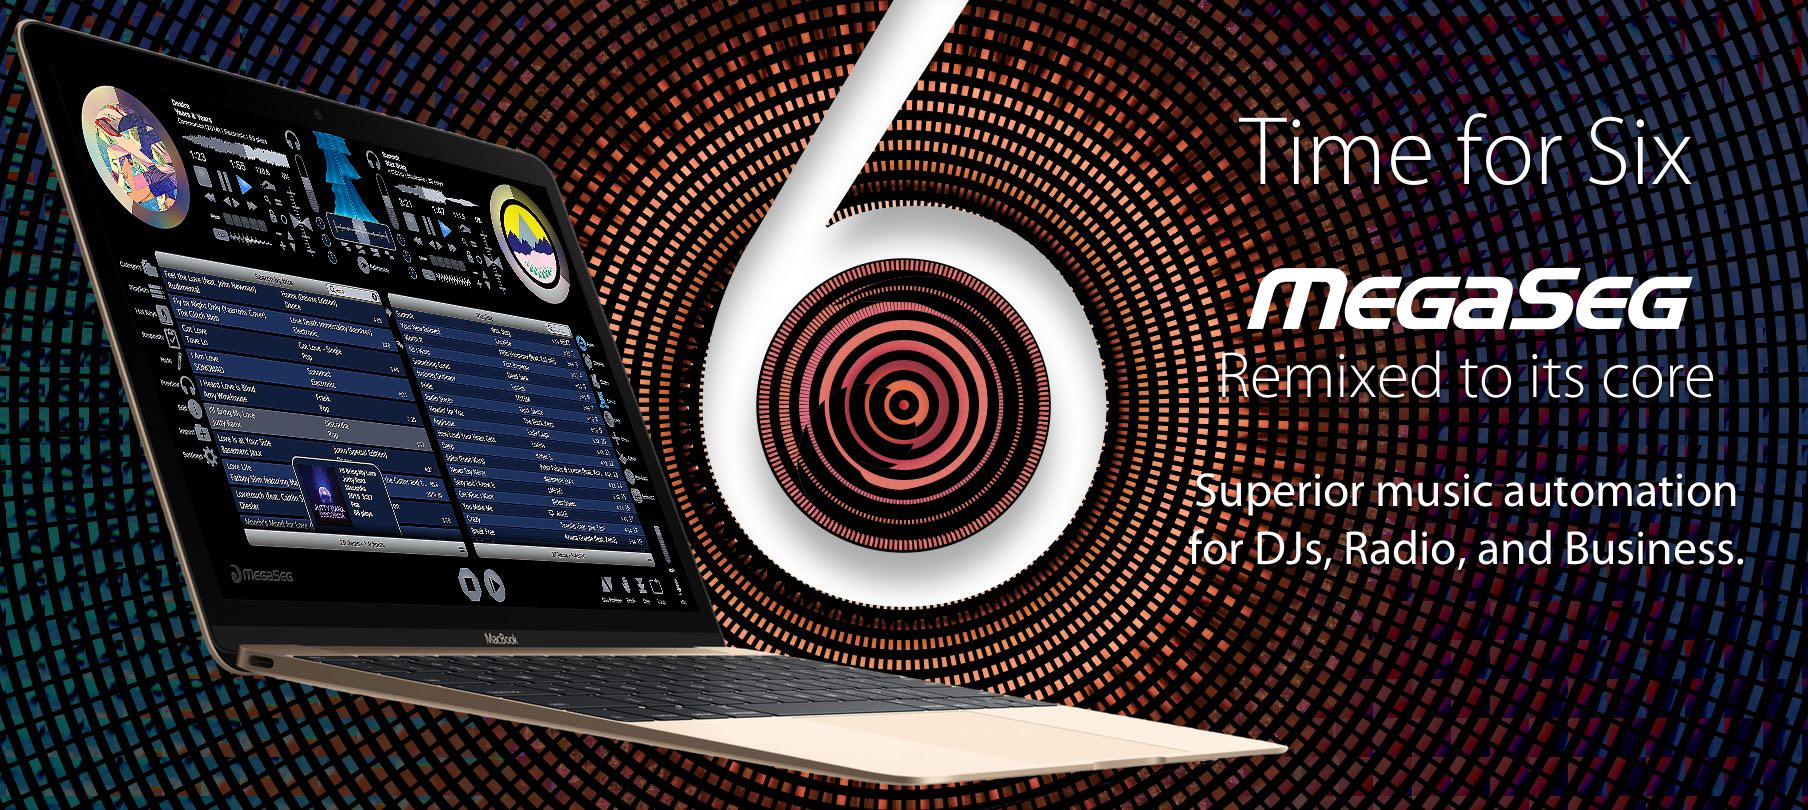 Time for Six. MegaSeg remixed to its core. Superior music automation for DJs, Radio, and Business. Featuring wave views, ambient video, rules, events, requests, and elegant library management.